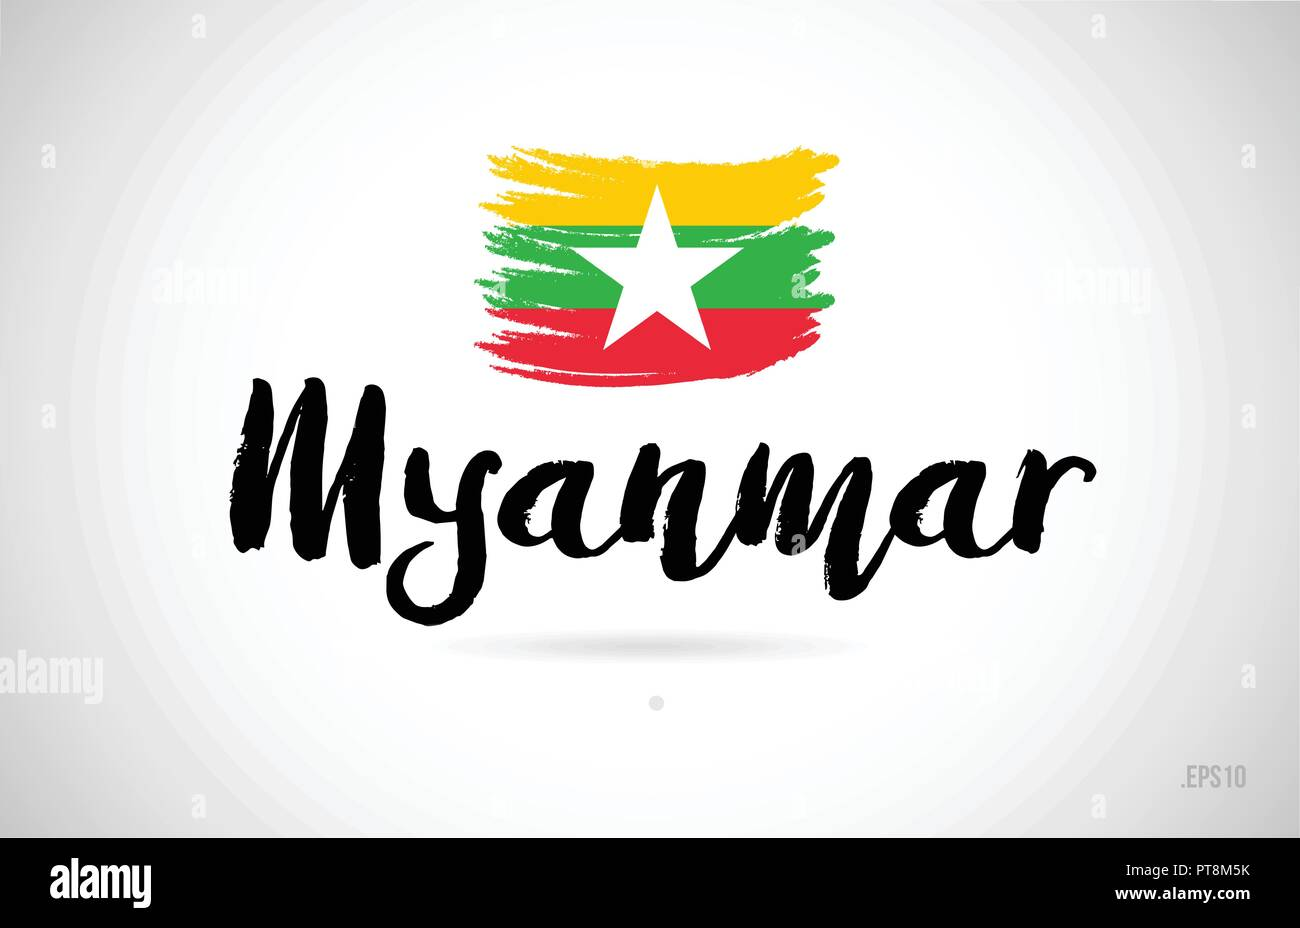 myanmar country flag concept with grunge design suitable for a logo icon design - Stock Vector